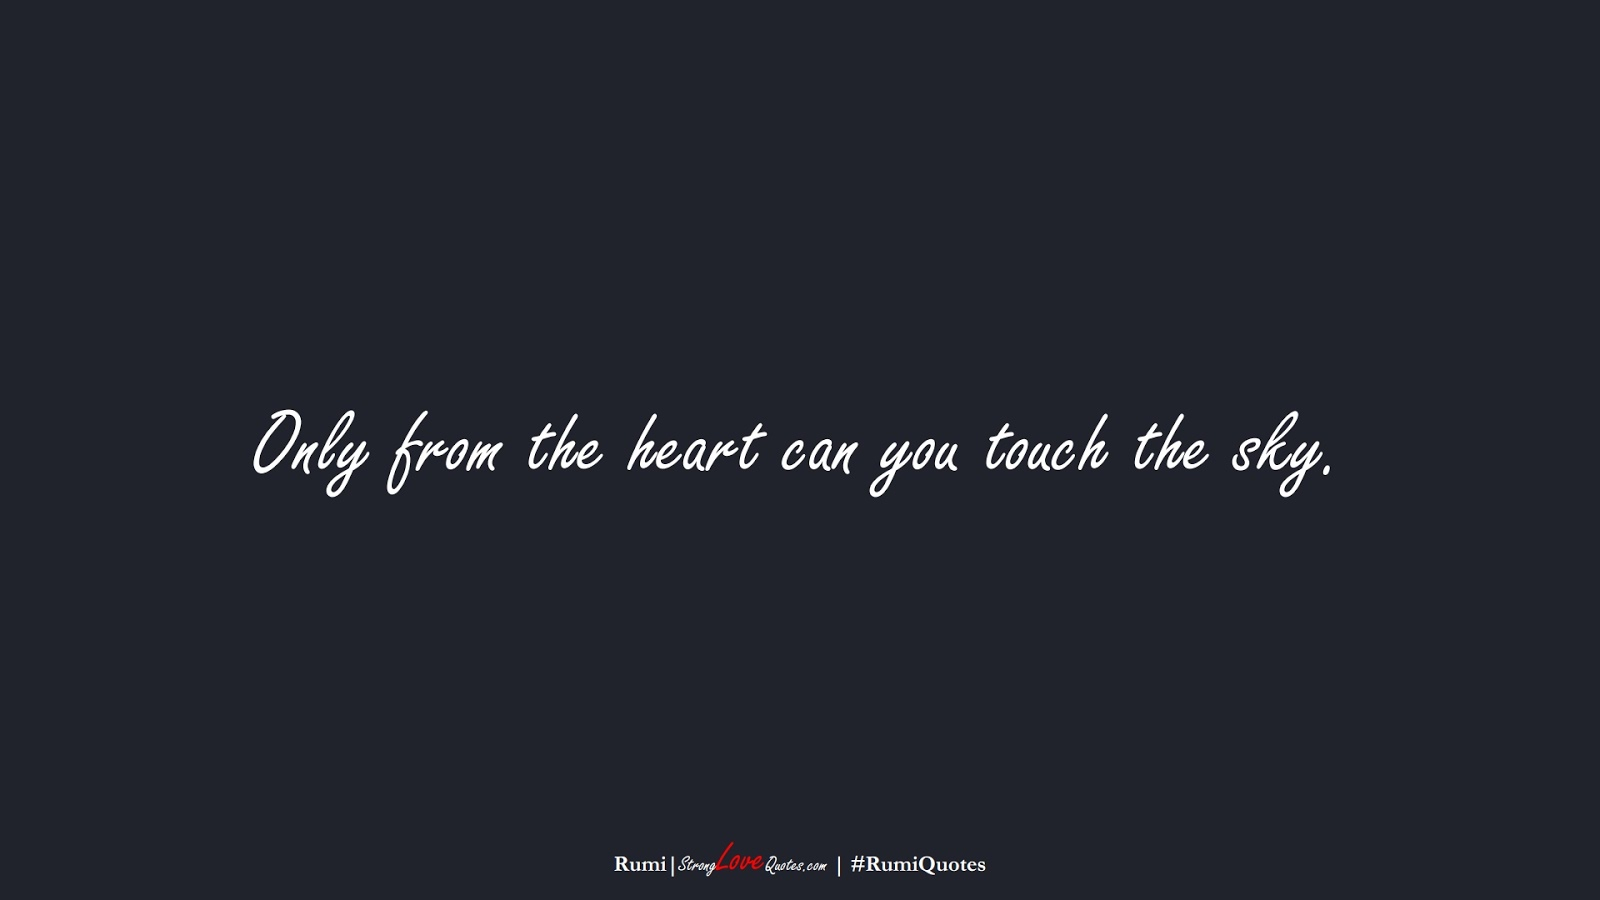 Only from the heart can you touch the sky. (Rumi);  #RumiQuotes